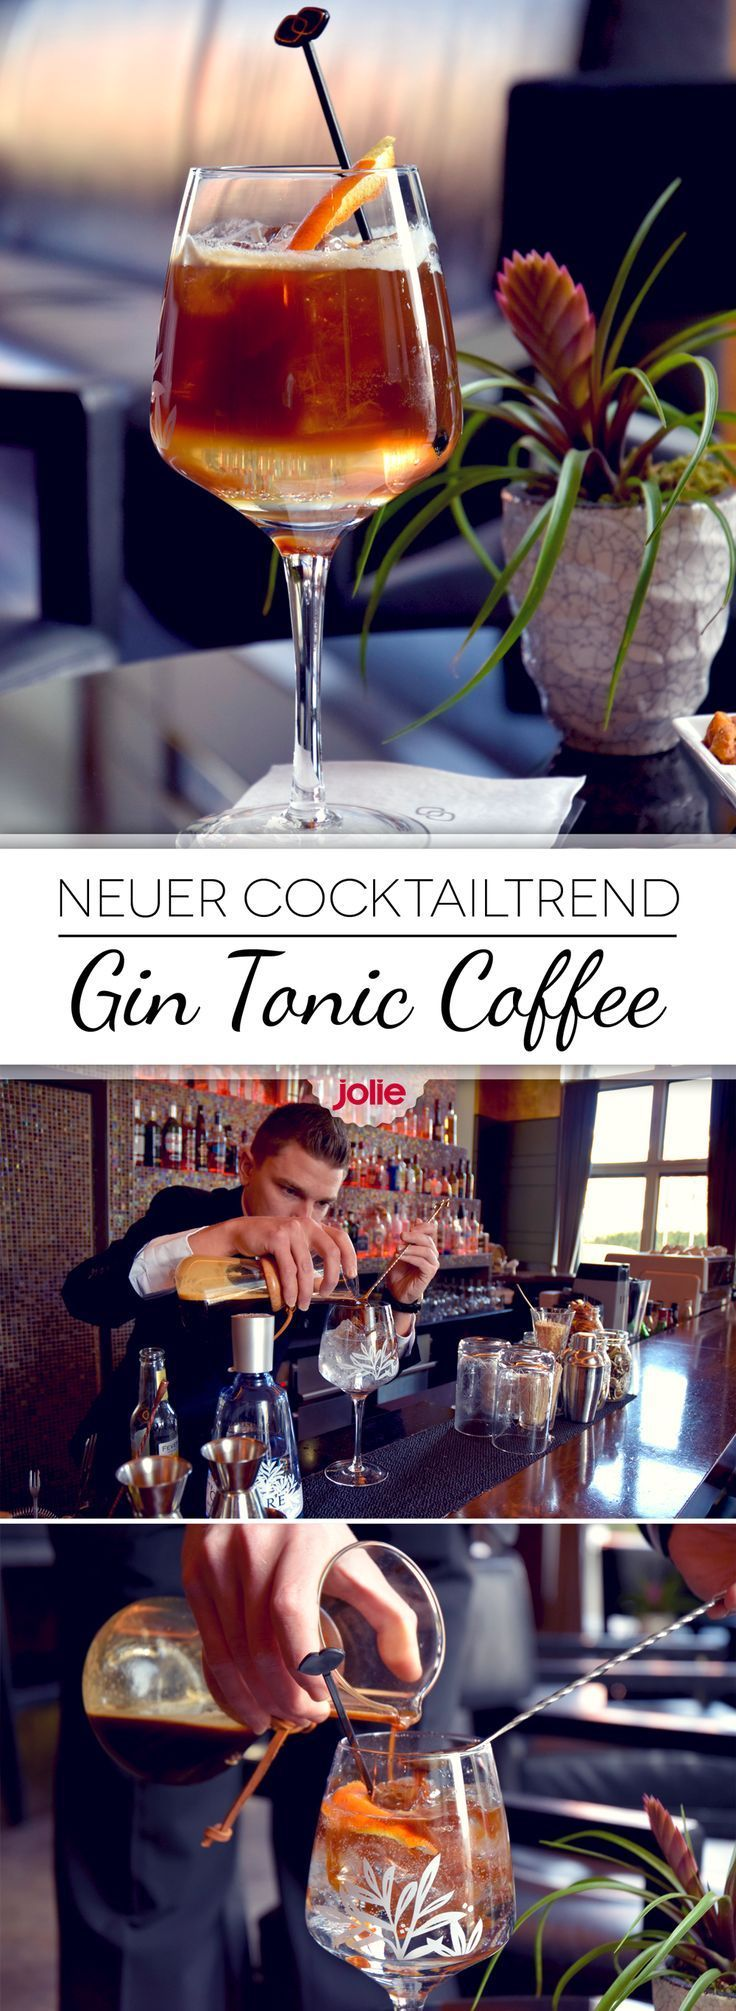 Photo of Neuer Cocktailtrend: Gin Tonic Coffee